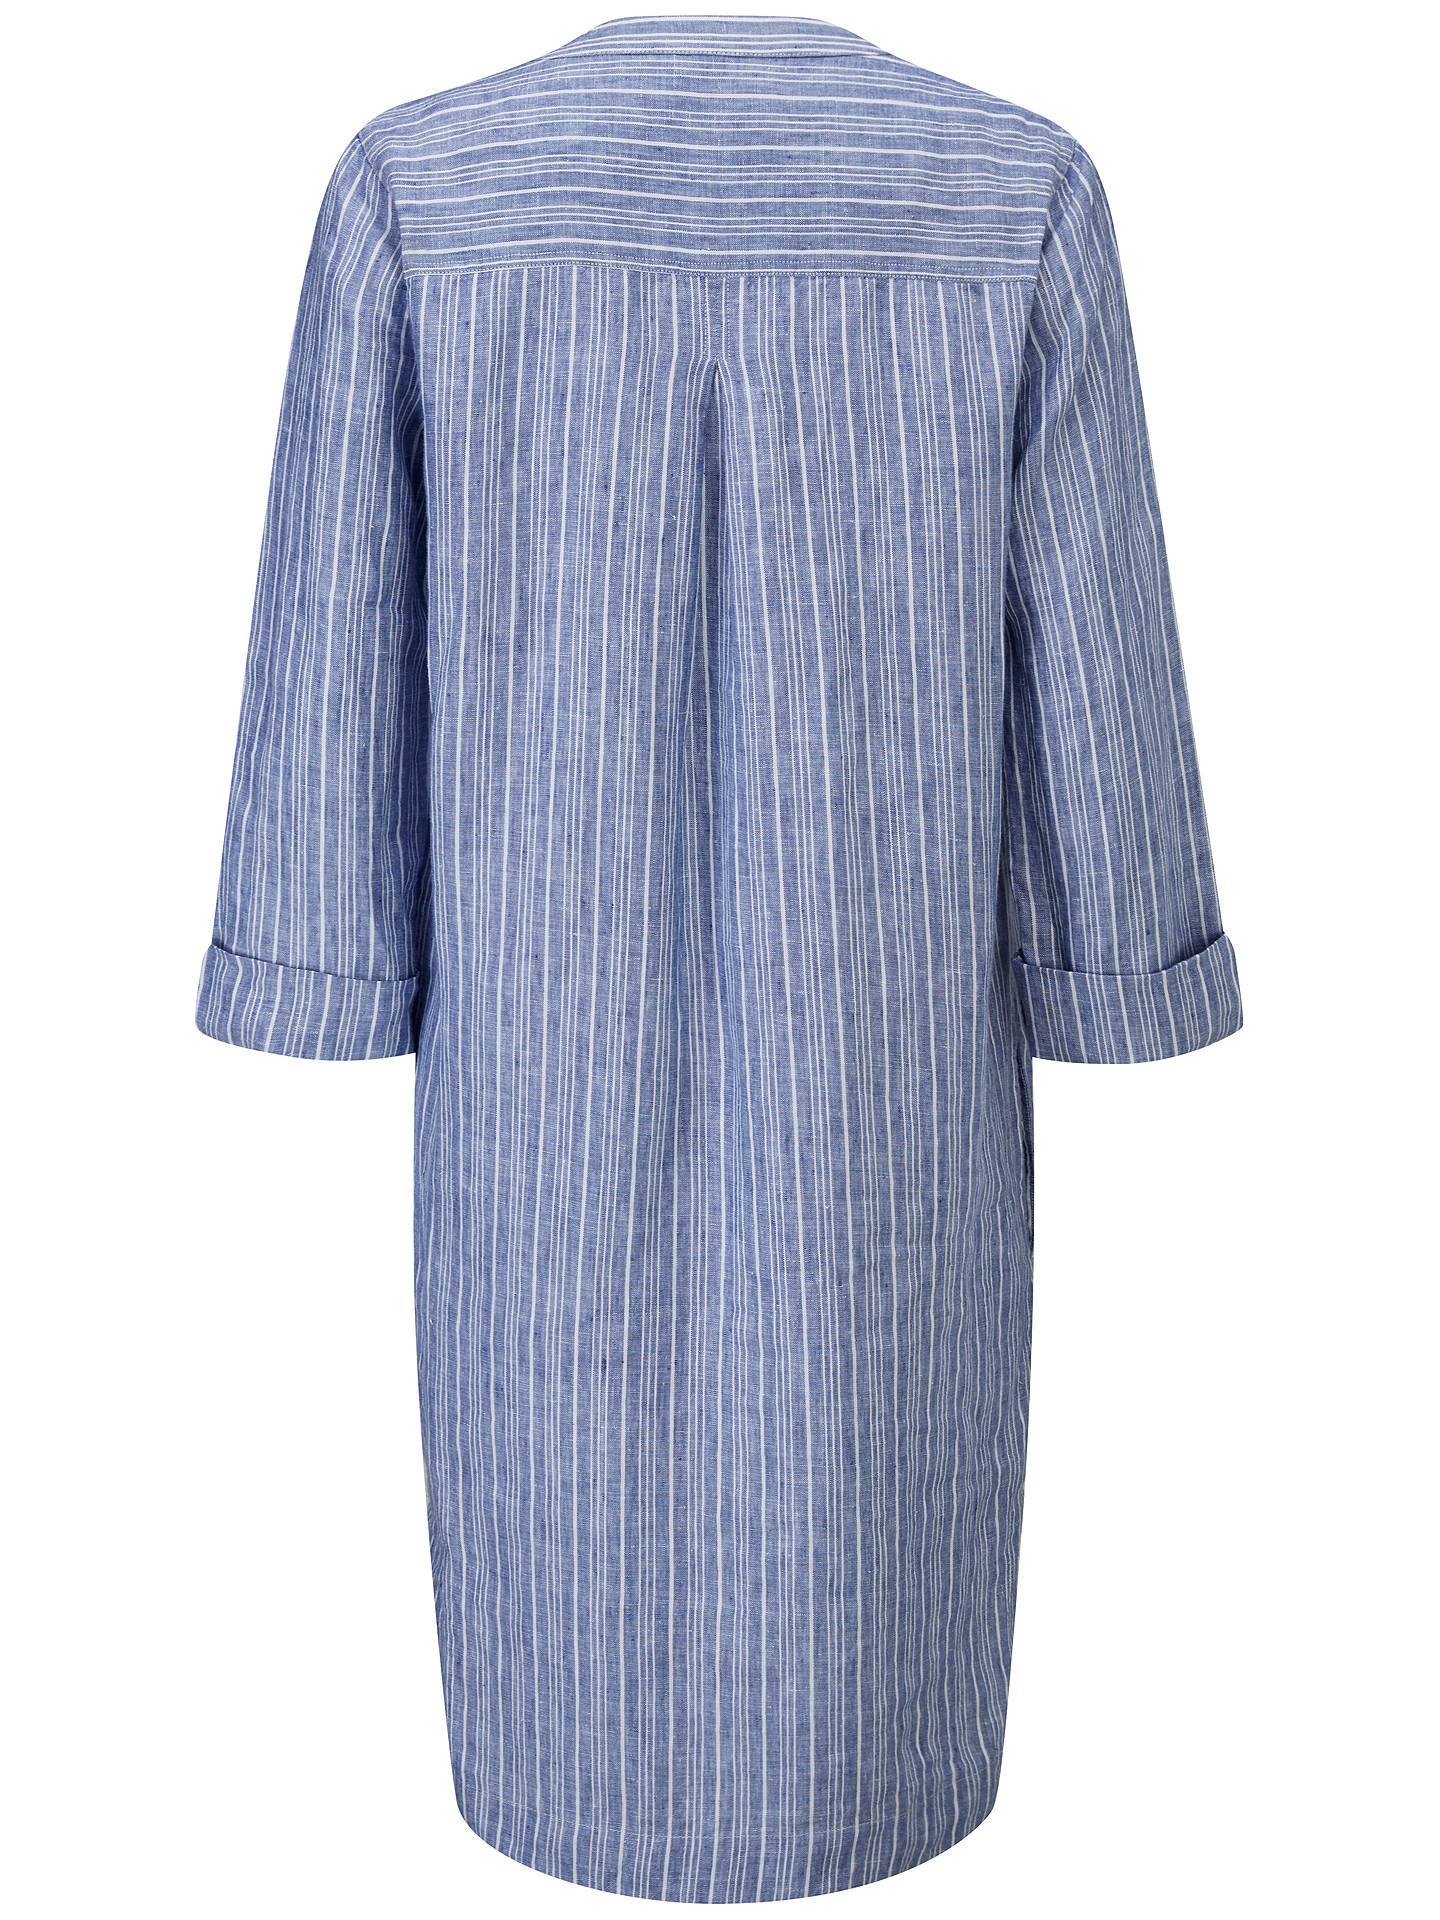 Buy Pure Collection Linen Striped Pocketed Dress, Blue/White, 8 Online at johnlewis.com